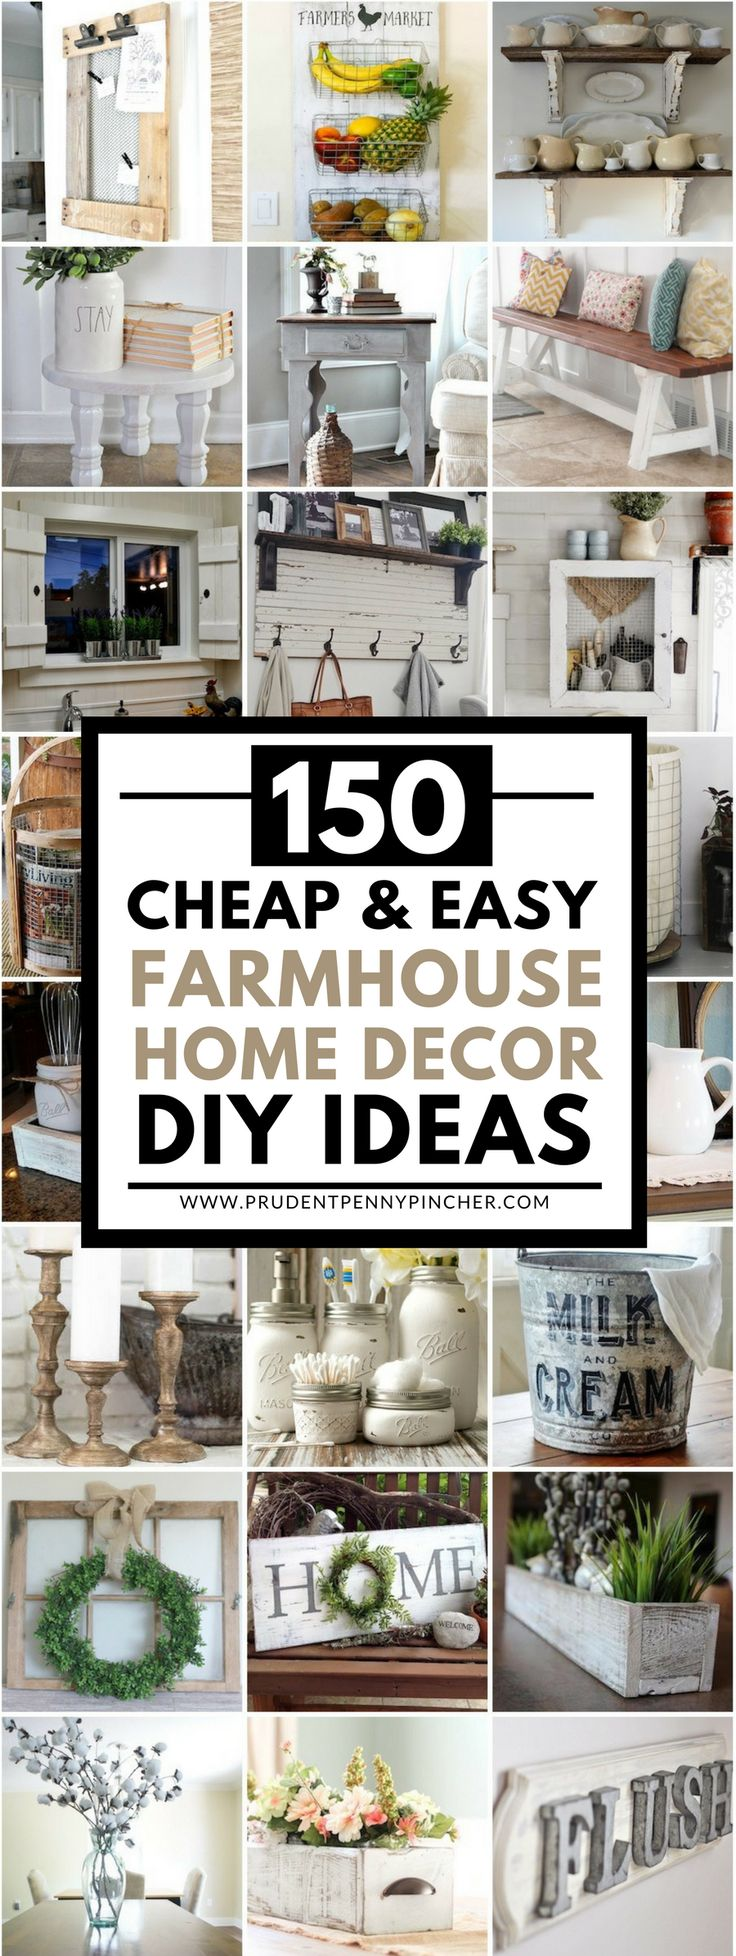 Top 25  best Farmhouse style decorating ideas on Pinterest   Basement decorating  ideas  Decorating kitchen and Farmhouse style. Top 25  best Farmhouse style decorating ideas on Pinterest